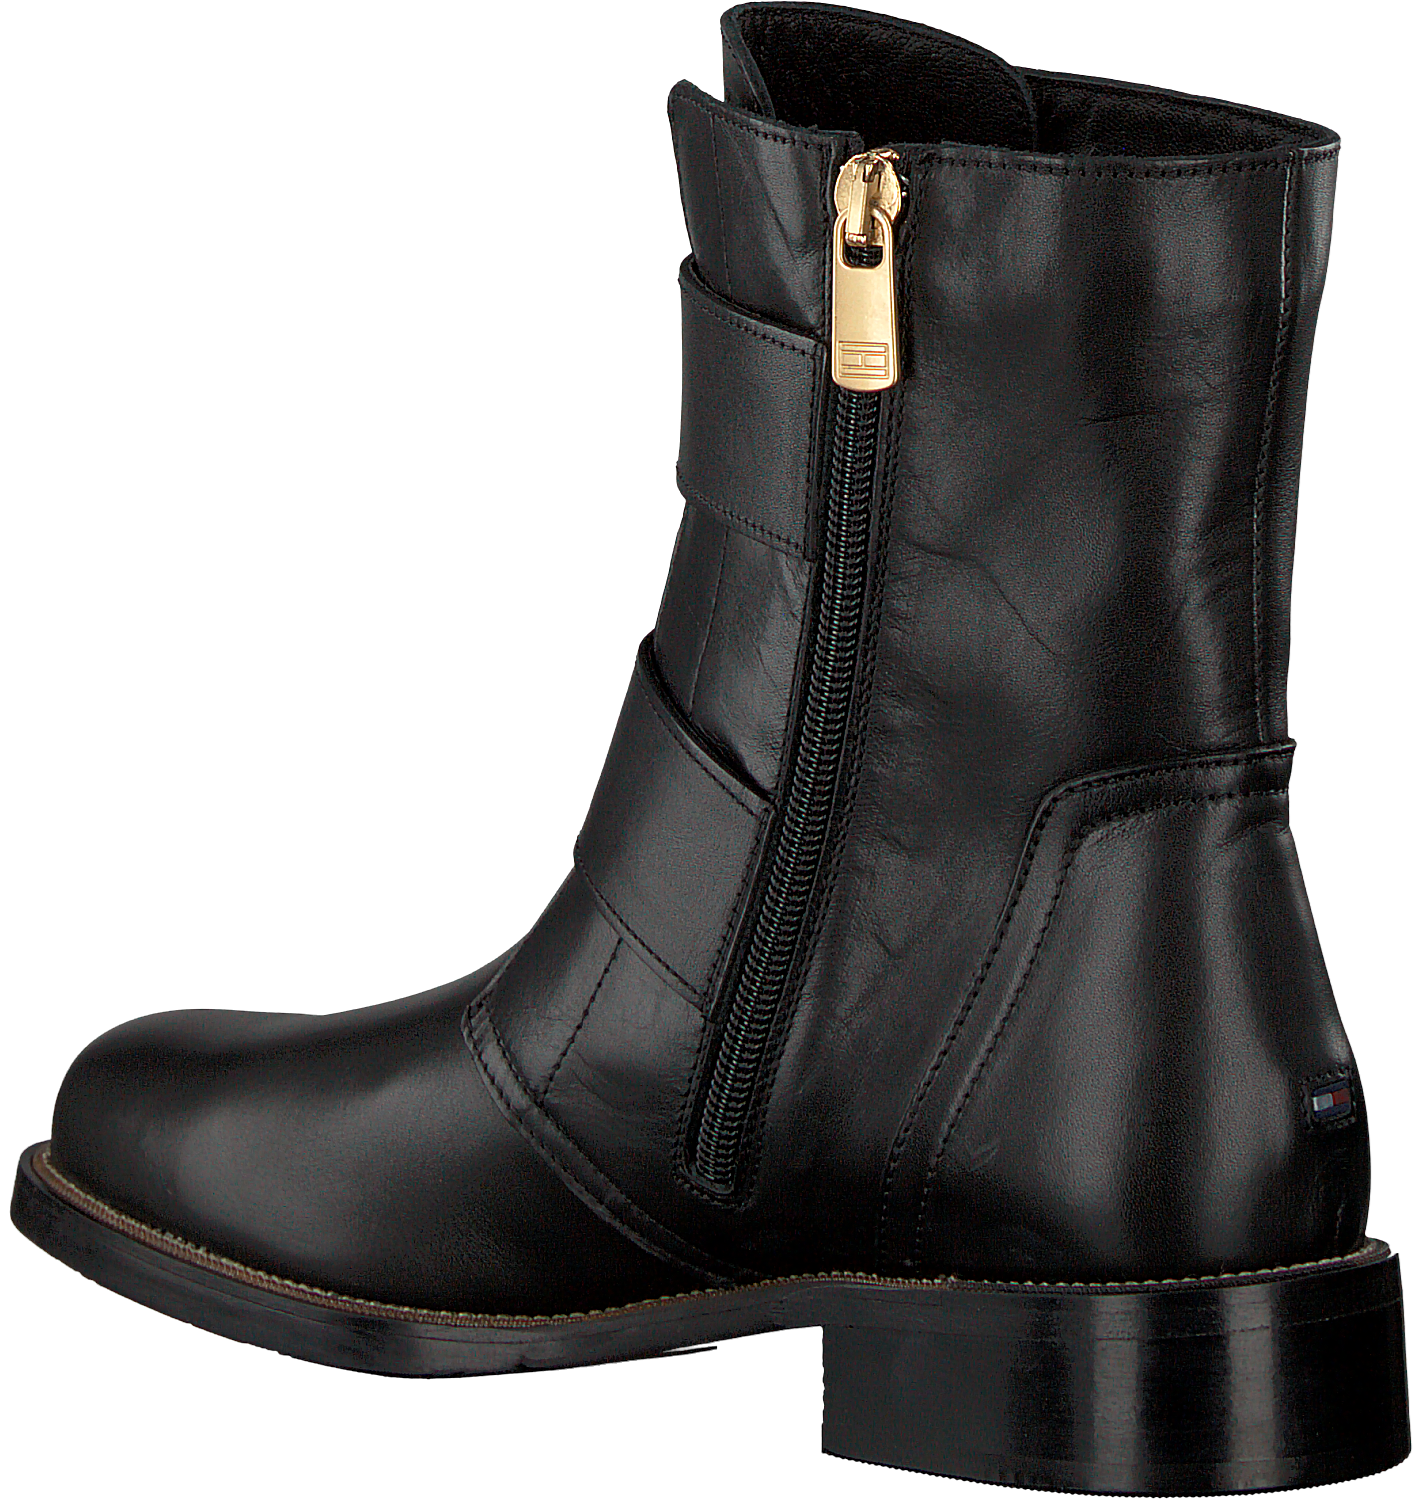 861ffaa5002c7 Black TOMMY HILFIGER Chelsea boots OVERSIZED BUCKLE FLAT BOOT - Omoda.com